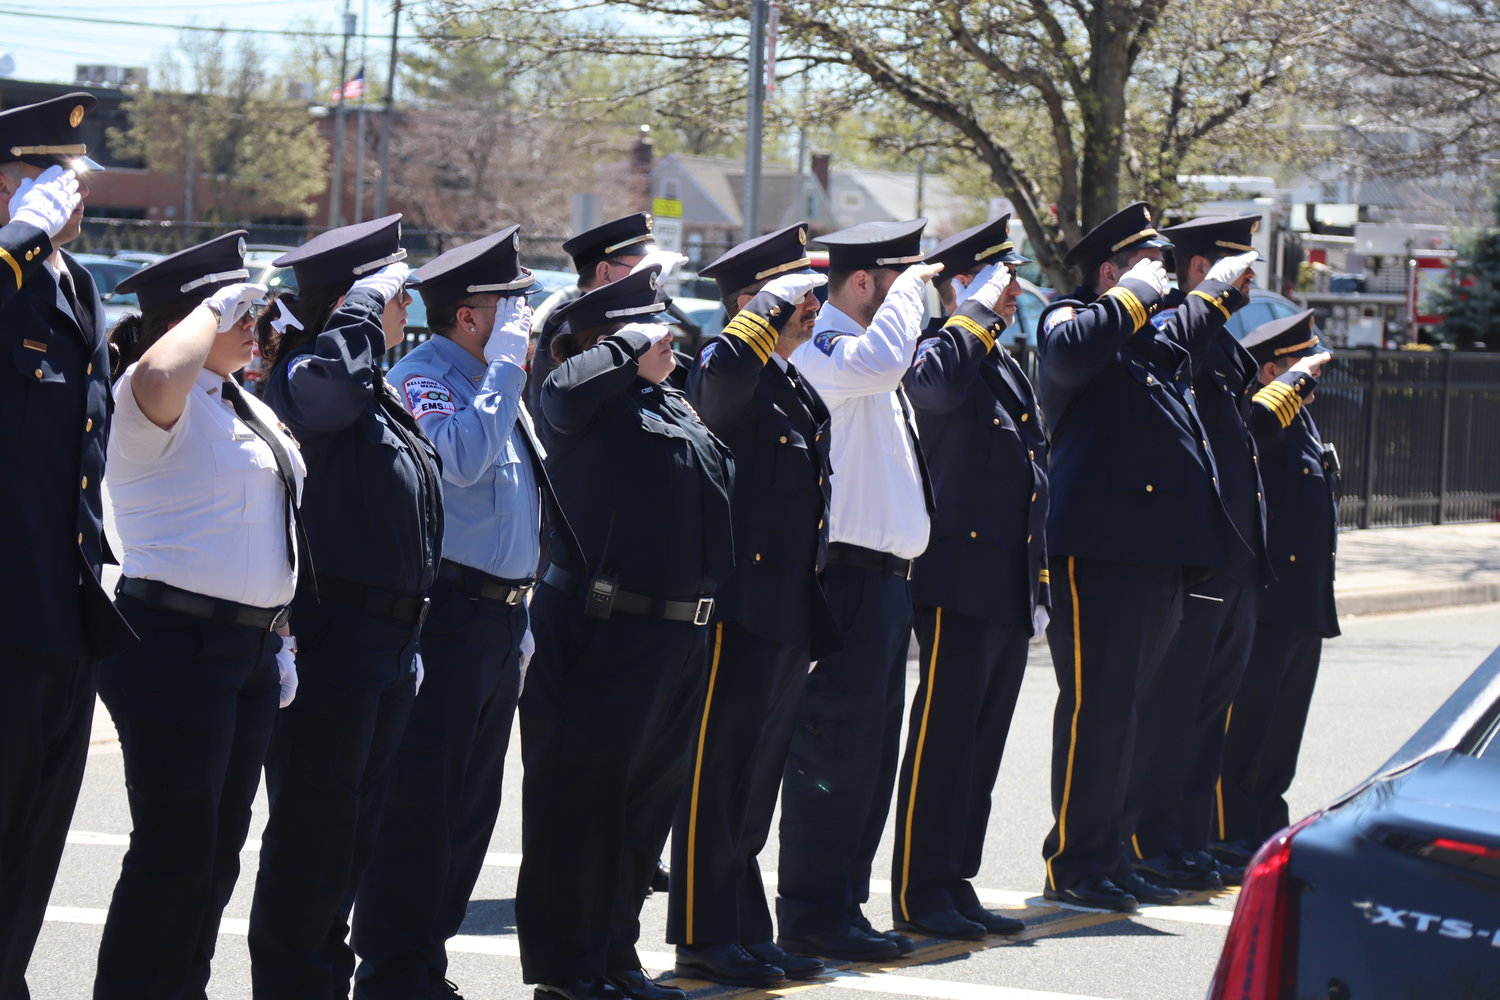 The Bellmore-Merrick Emergency Medical Services squad honored Thomas DeFrancisci at his funeral on Tuesday in Bellmore.